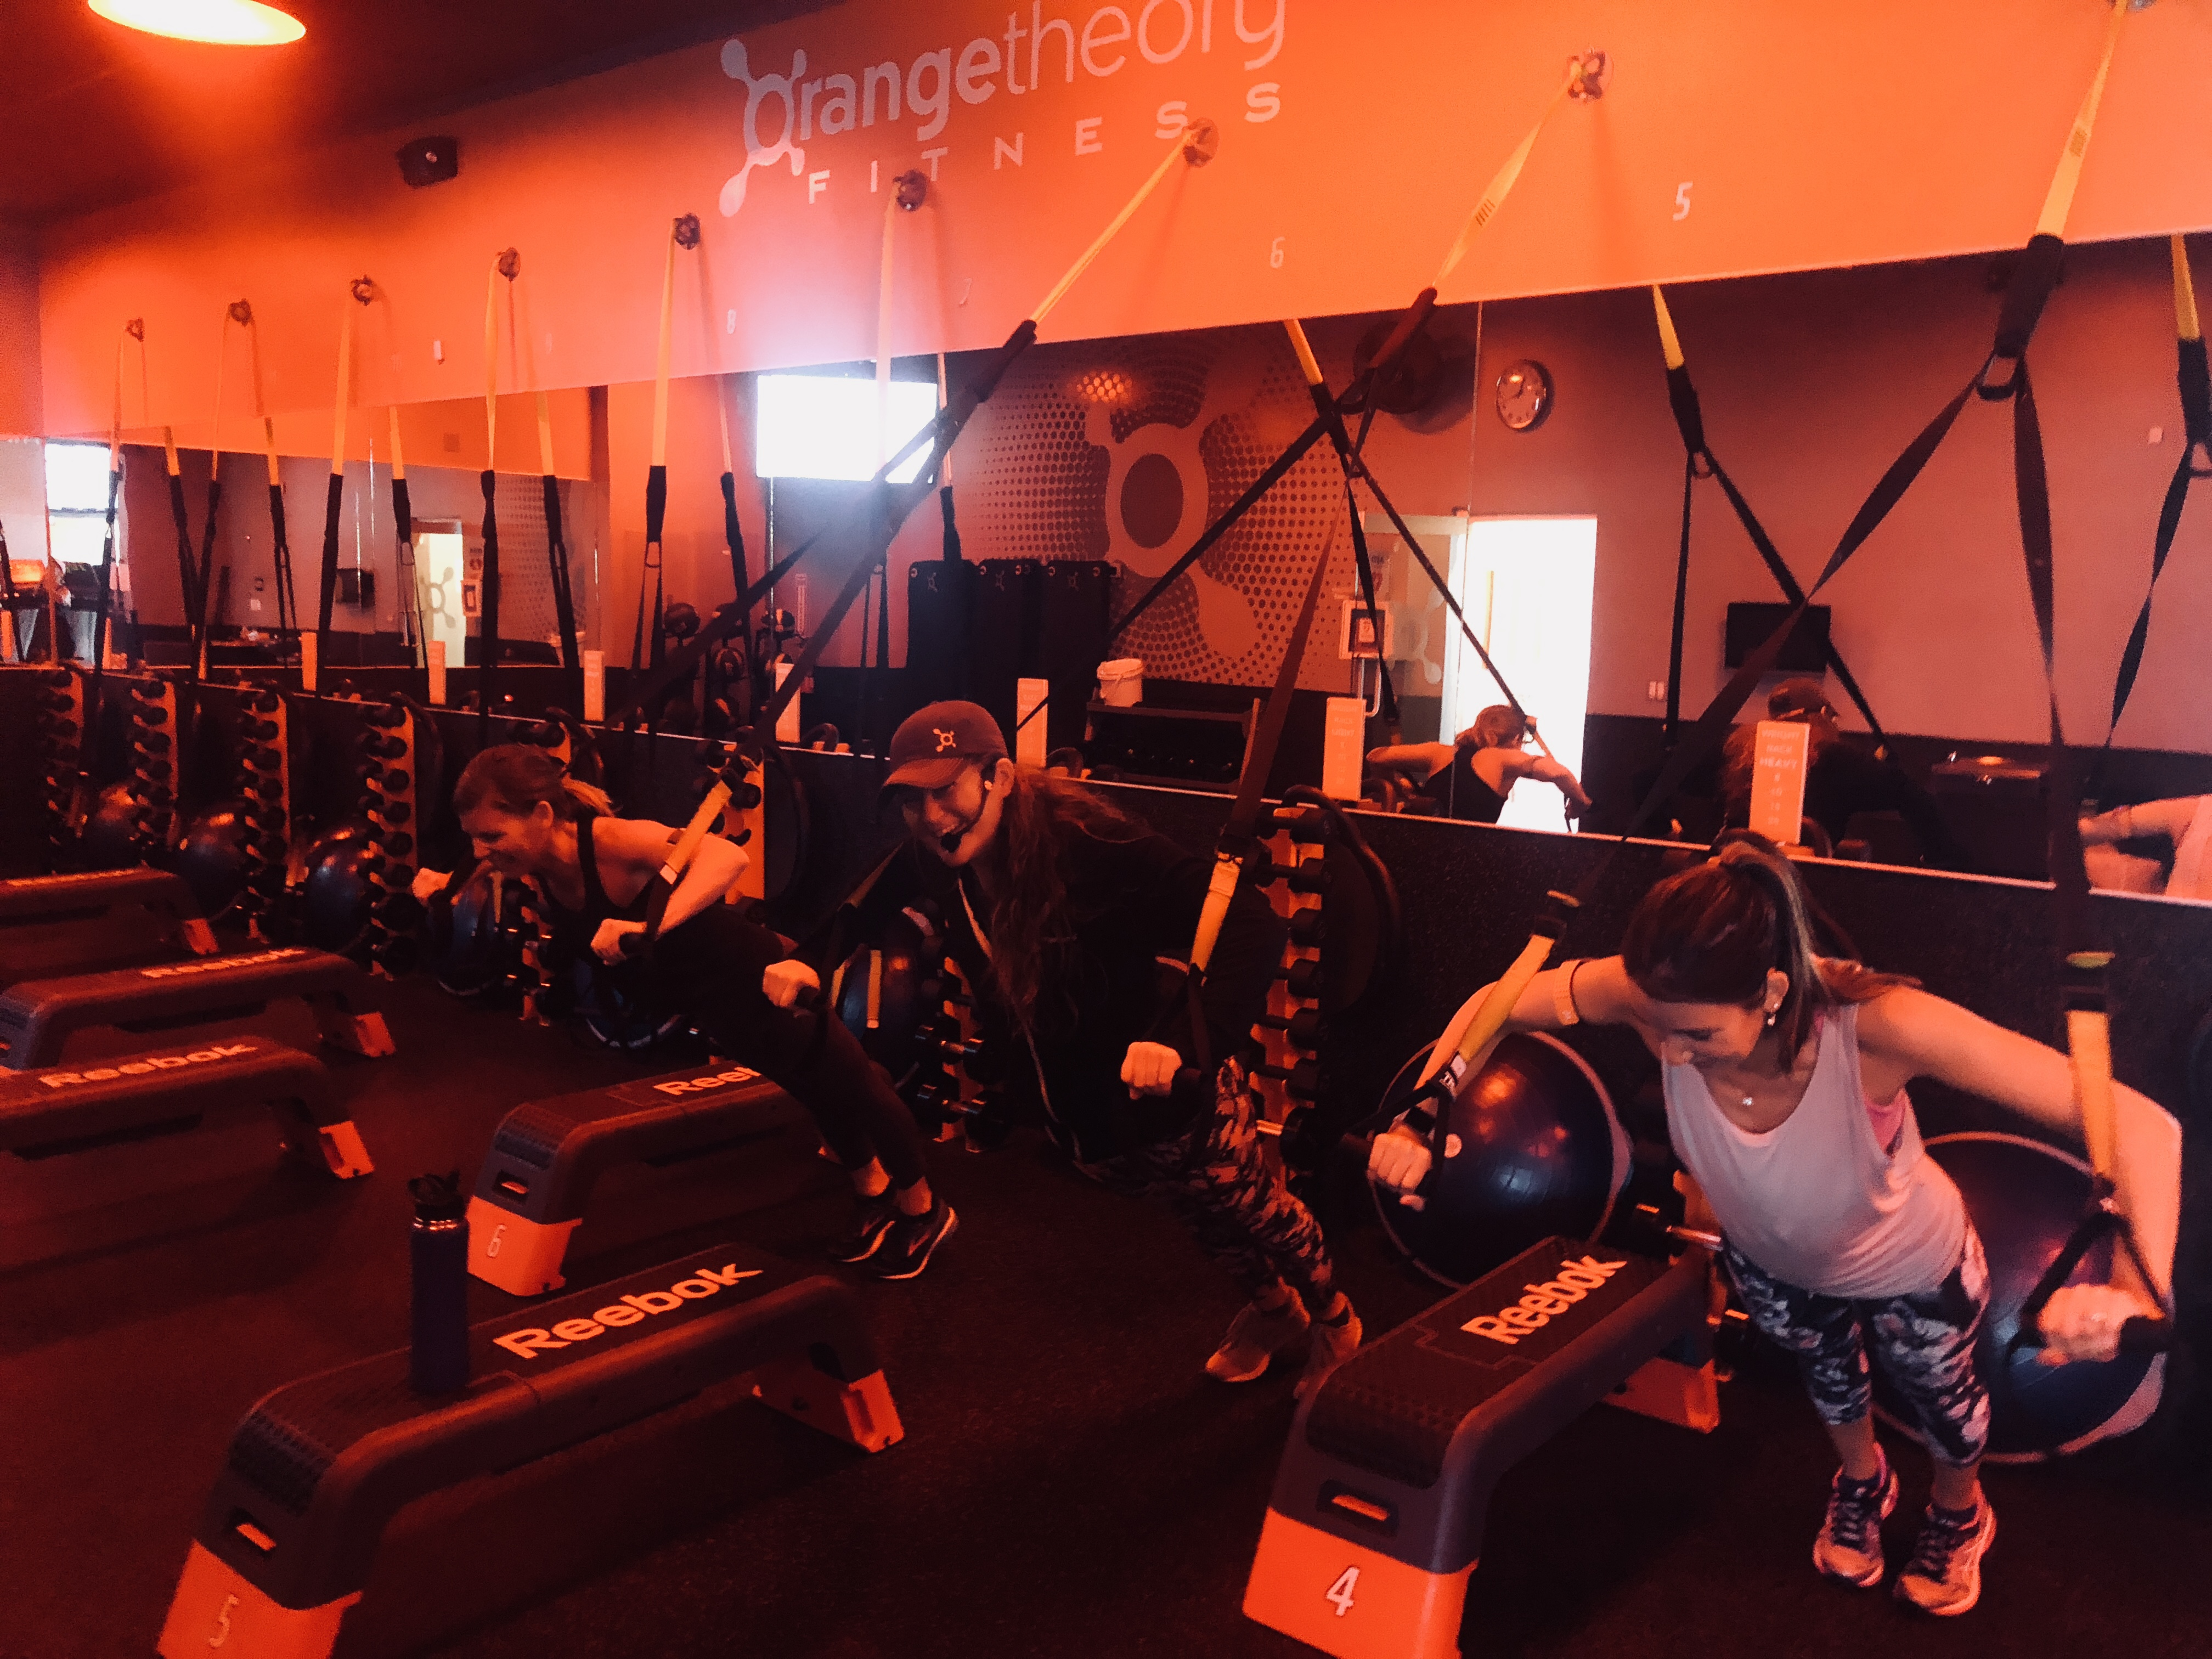 orangetheory fitness review – Erica working out with her instructor